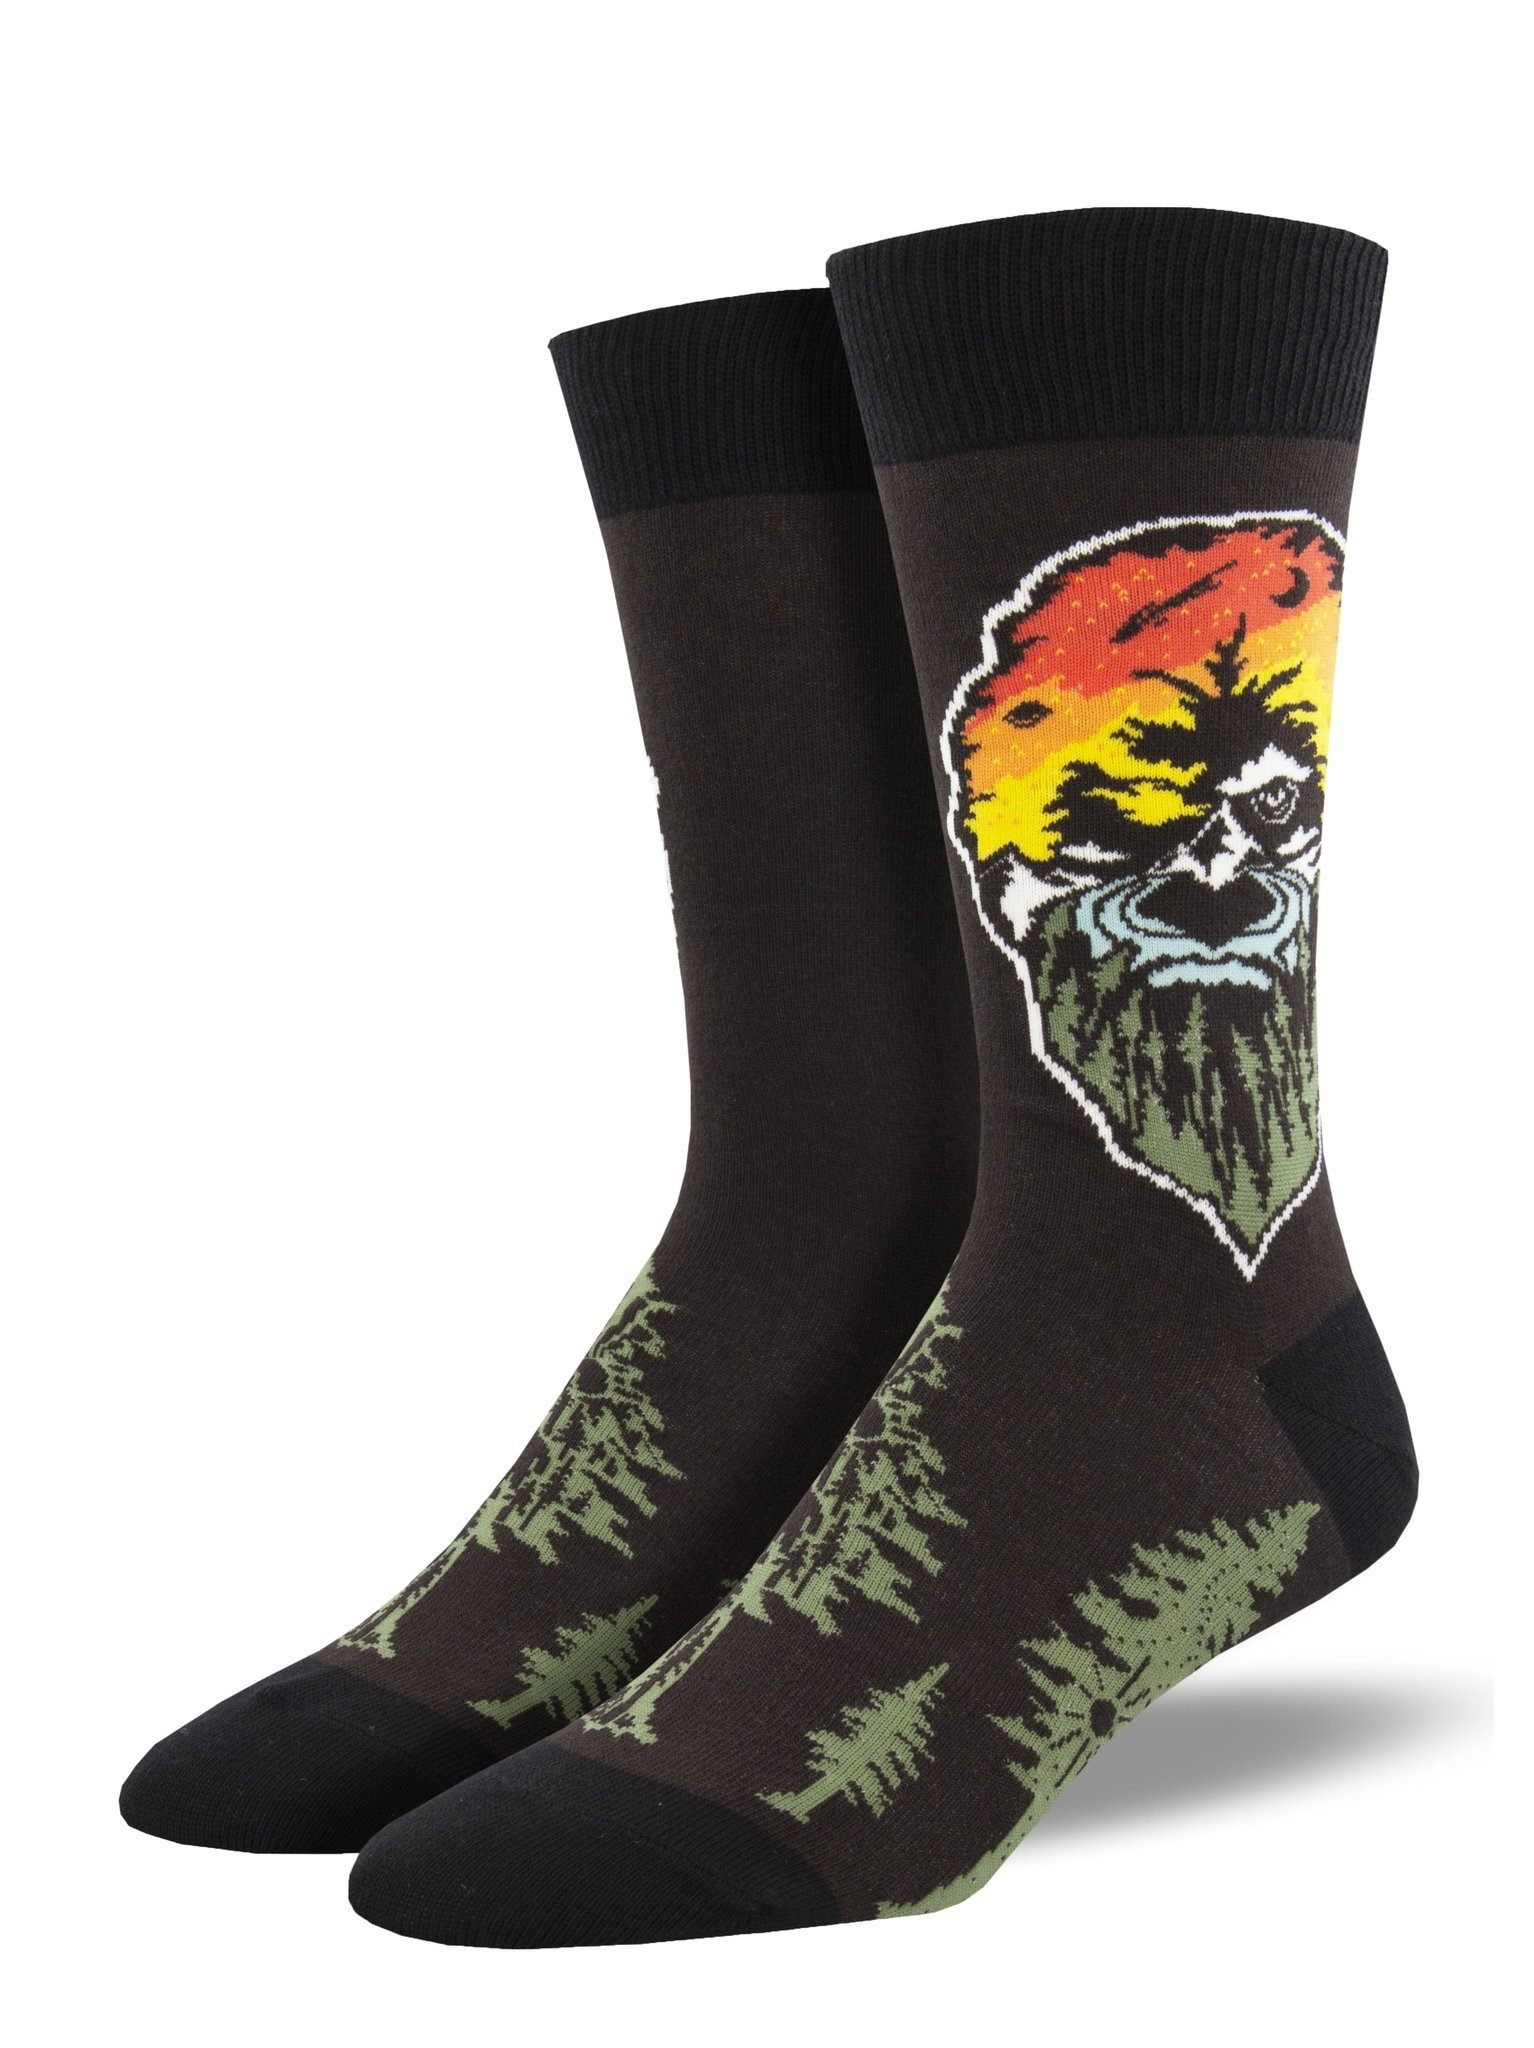 Socksmith - Atomicchild Force of Nature Crew Socks | Men's - Knock Your Socks Off